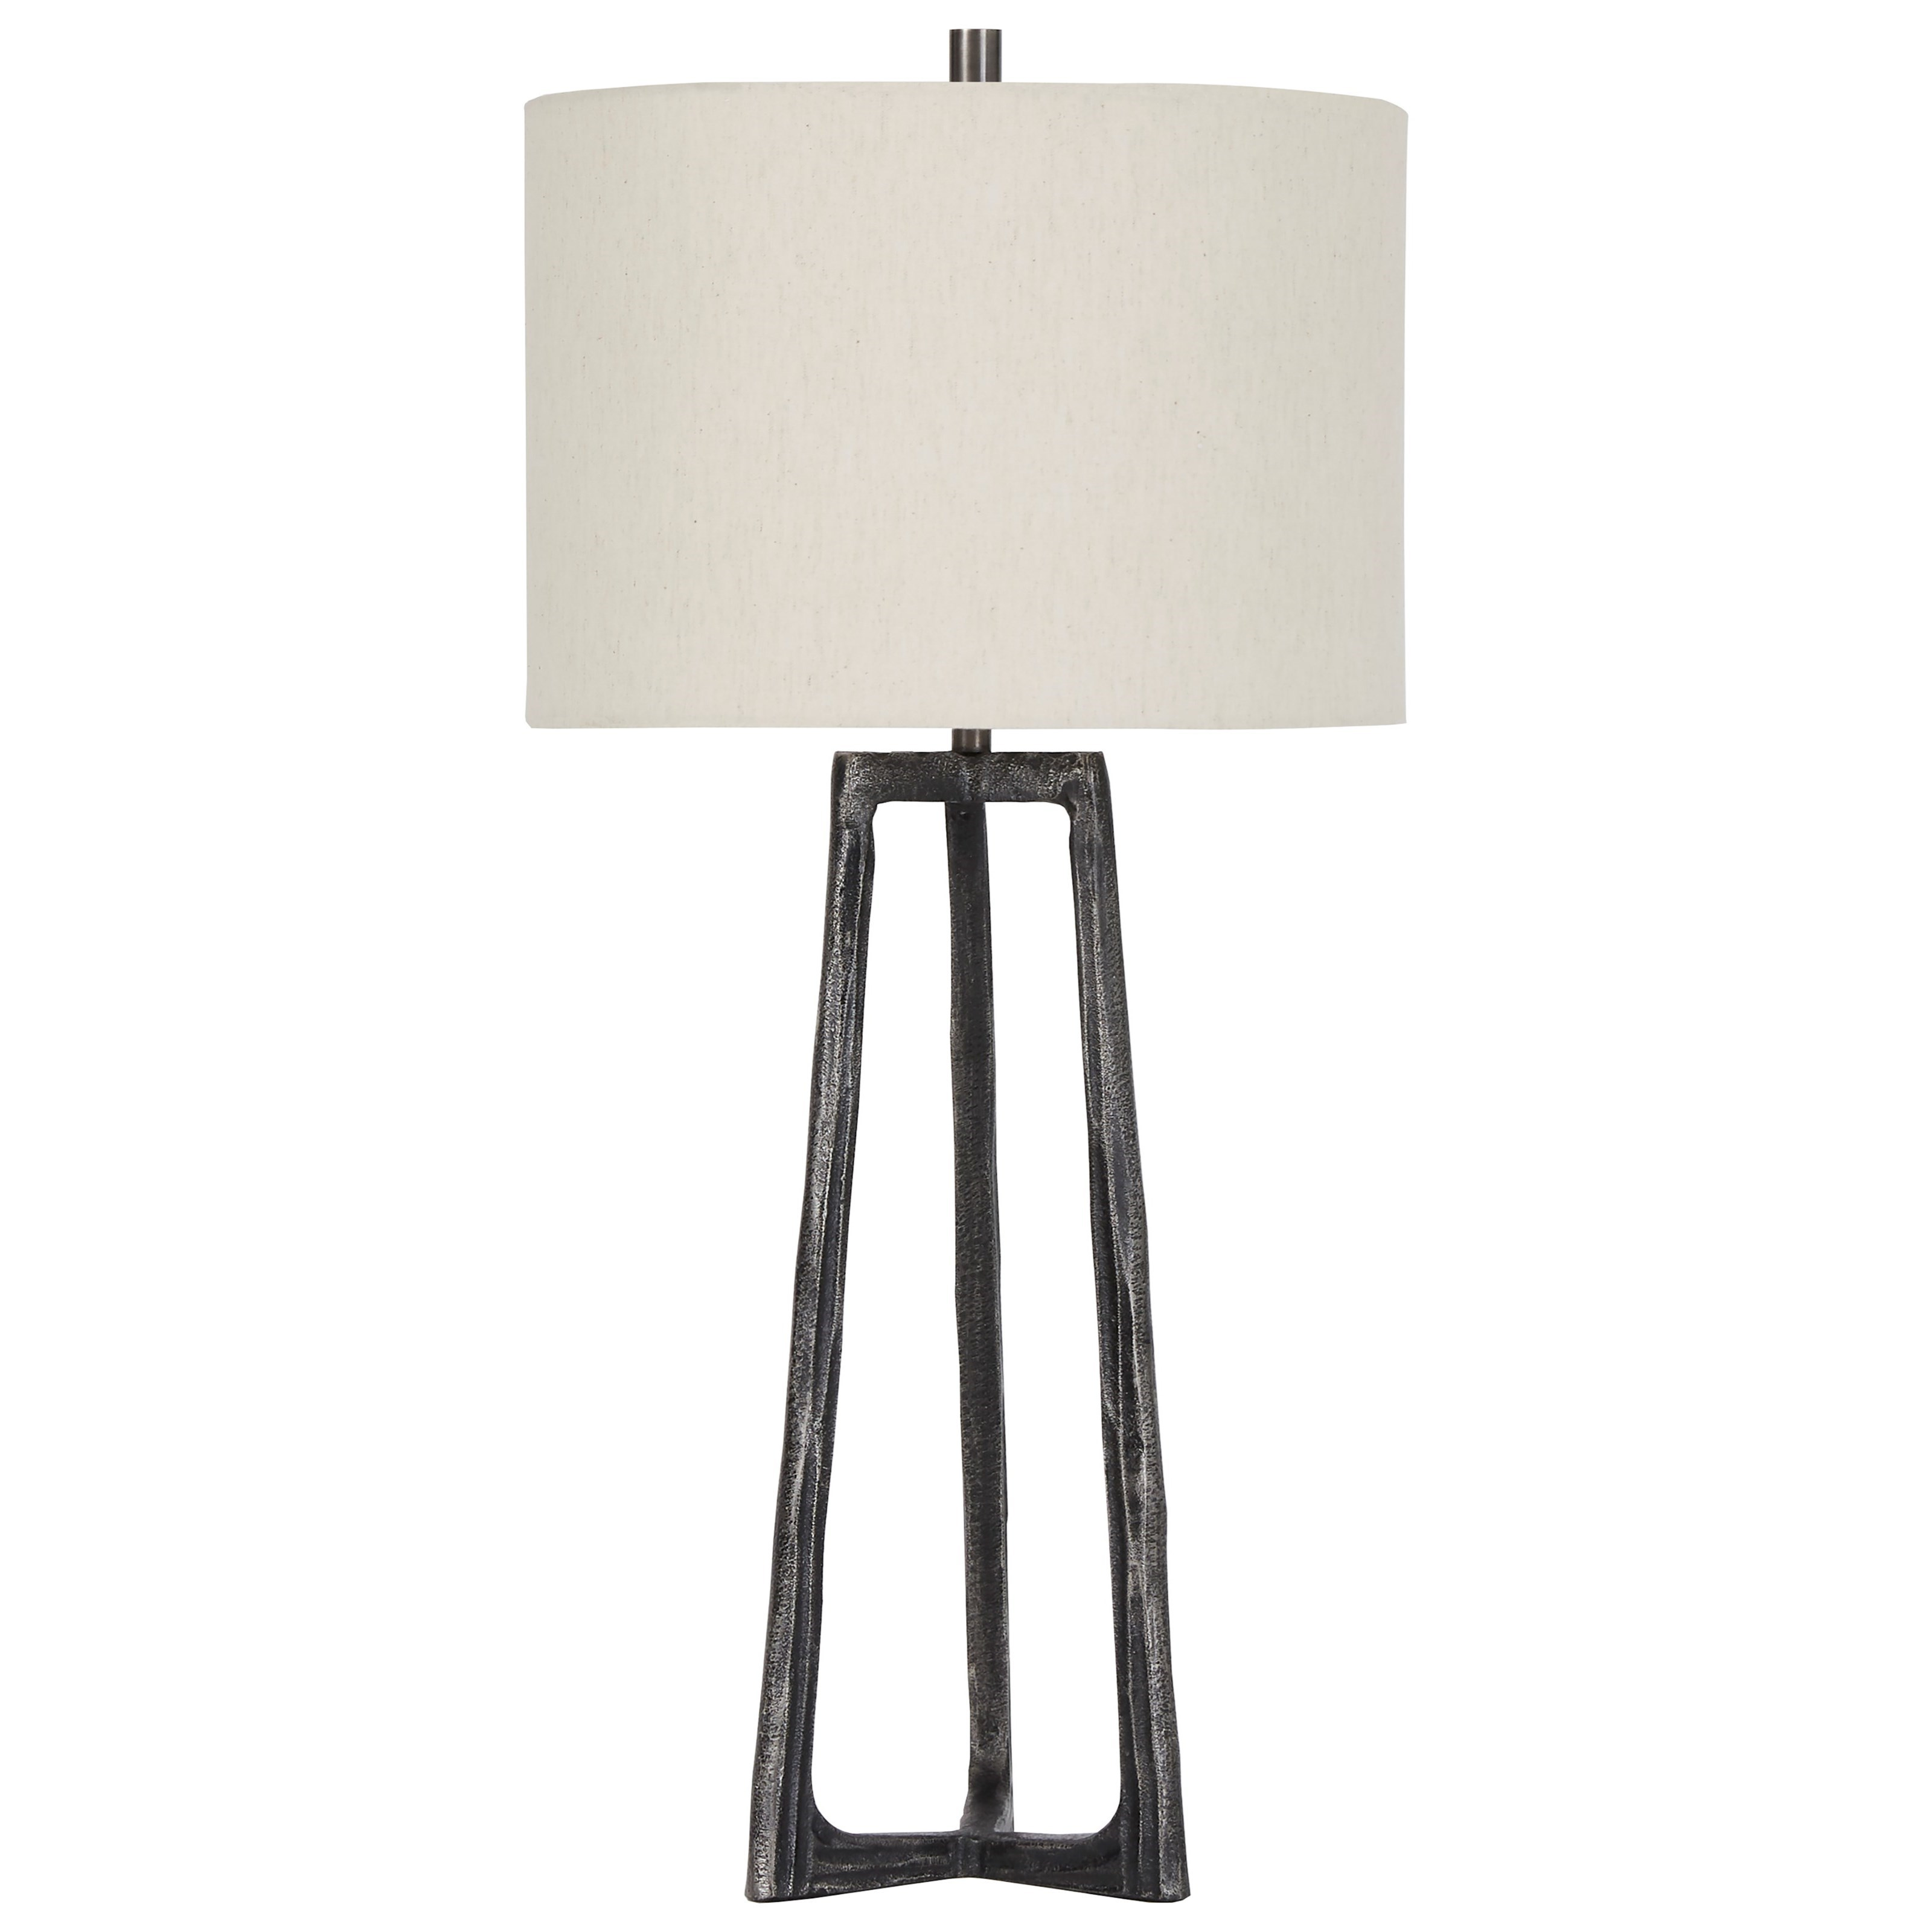 Lamps - Casual Peeta Antique Pewter Finish Metal Table Lamp at Van Hill Furniture